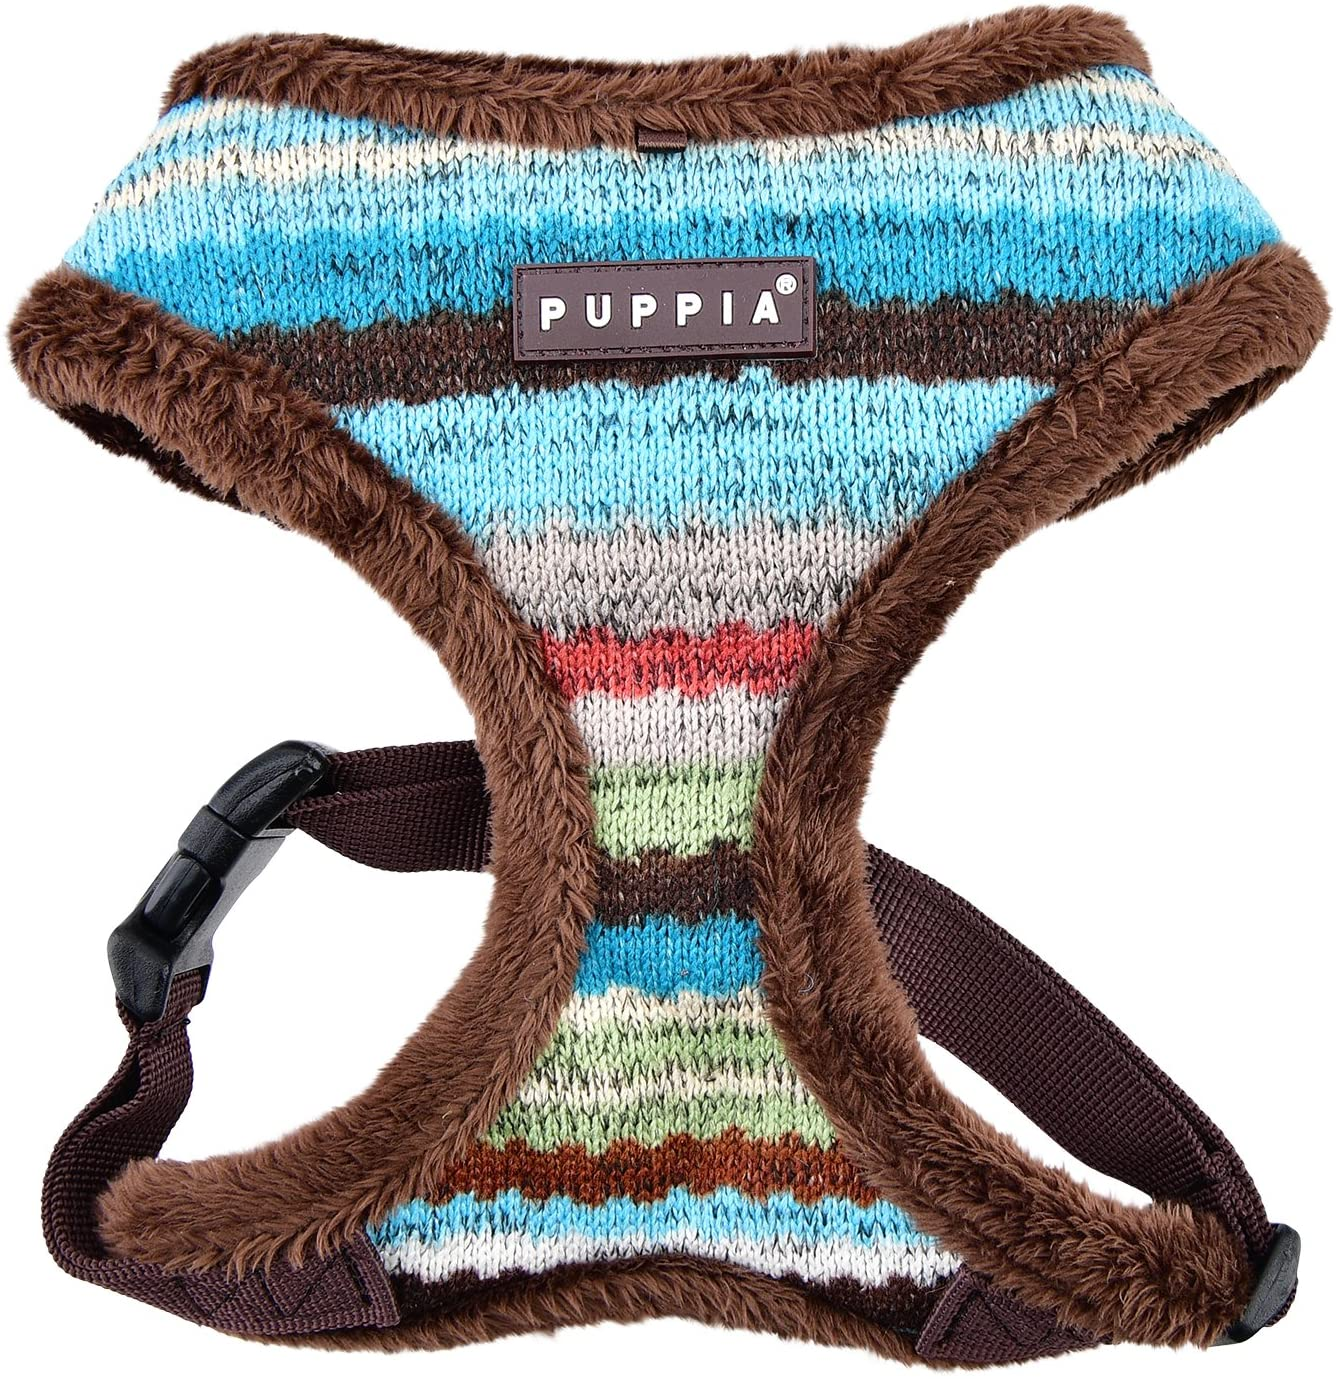 Puppia Crayon Harness A, X-Large, Brown